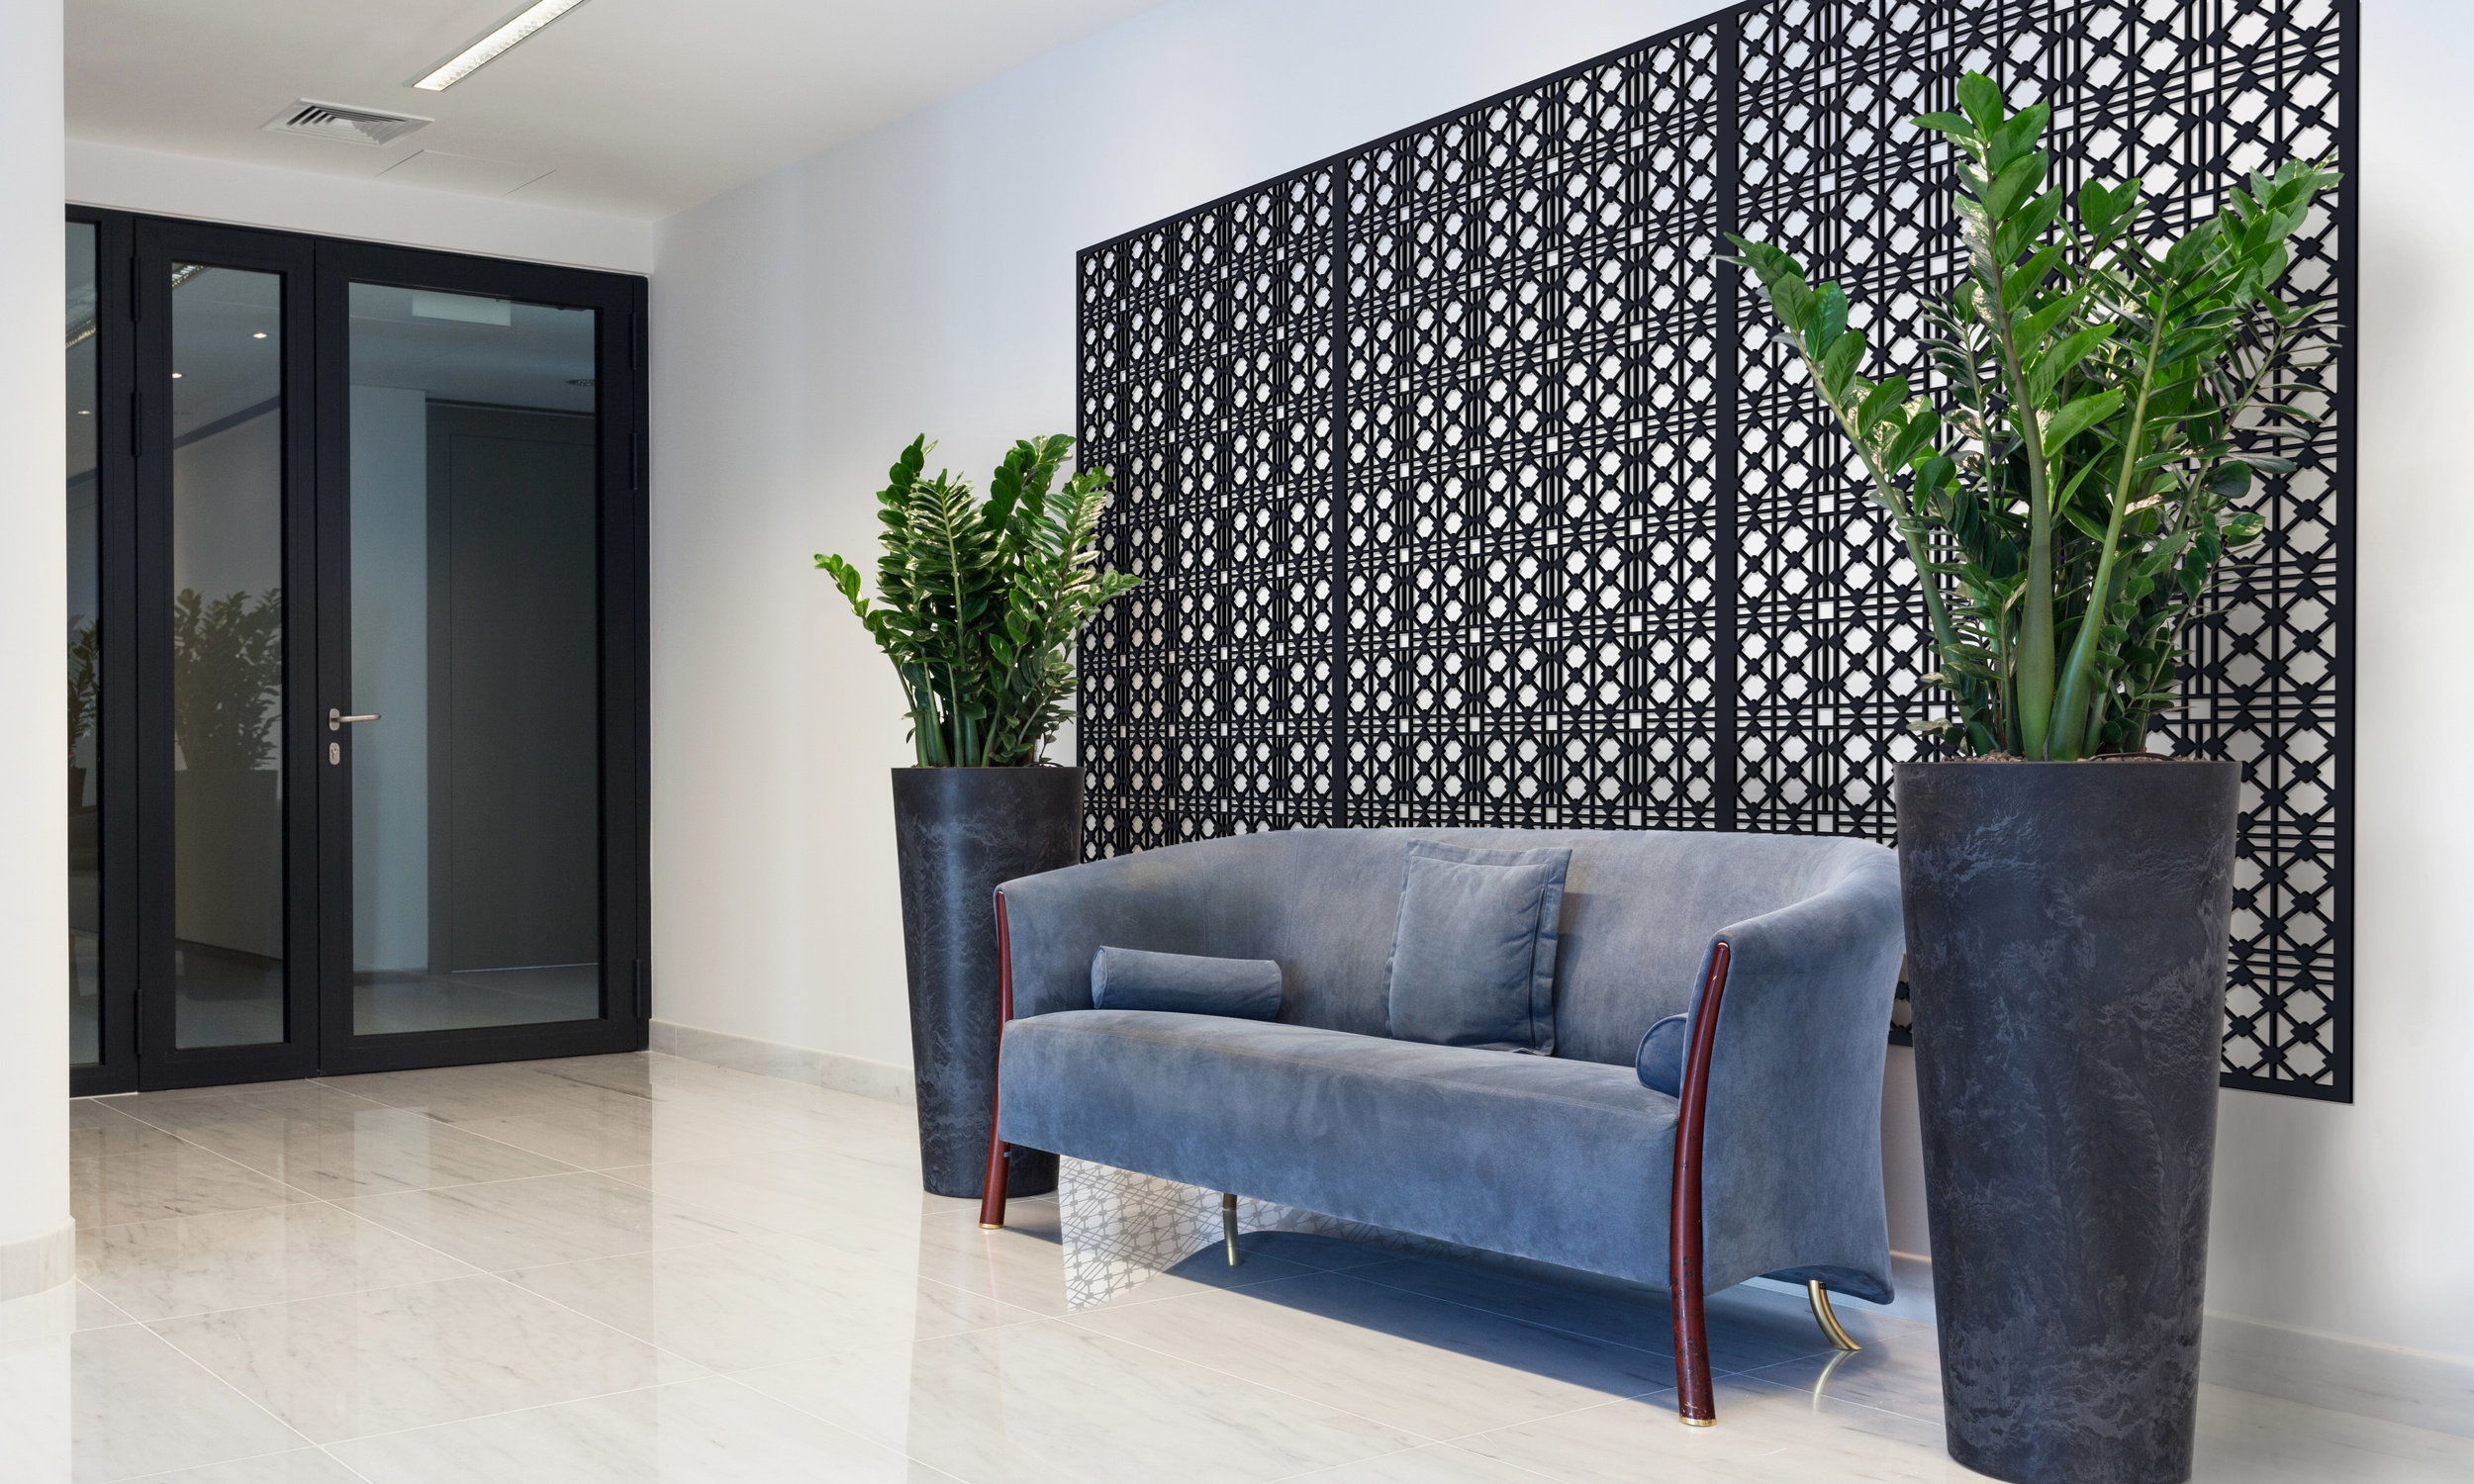 Installation Rendering B   Hardt Grille decorative office wall panel - painted